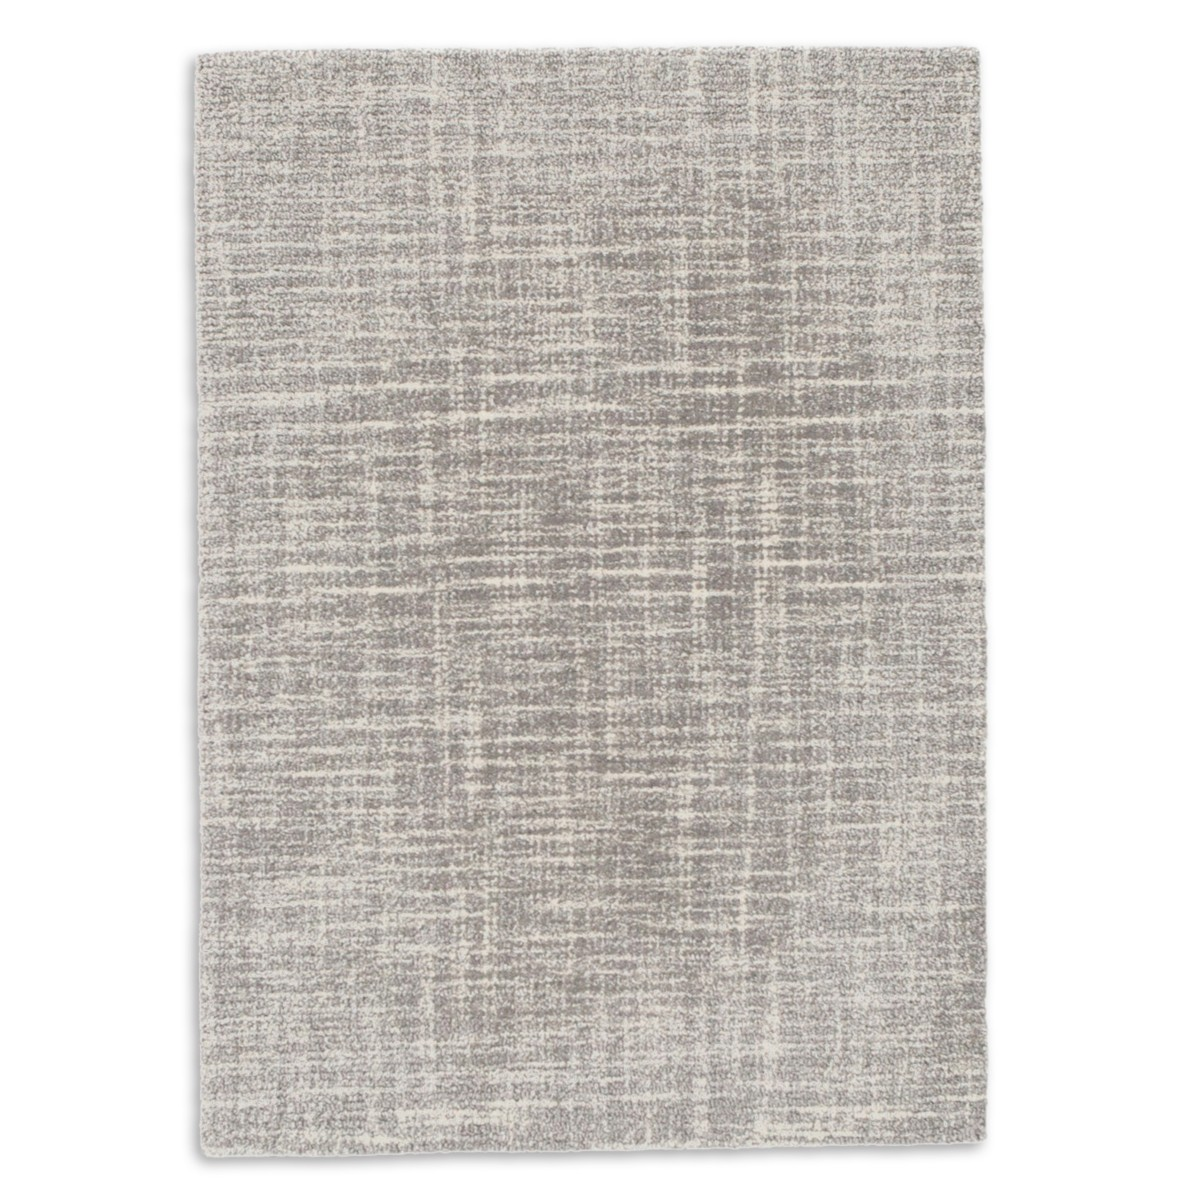 Crosshatch Wool Micro Hooked Rug - Dove Grey